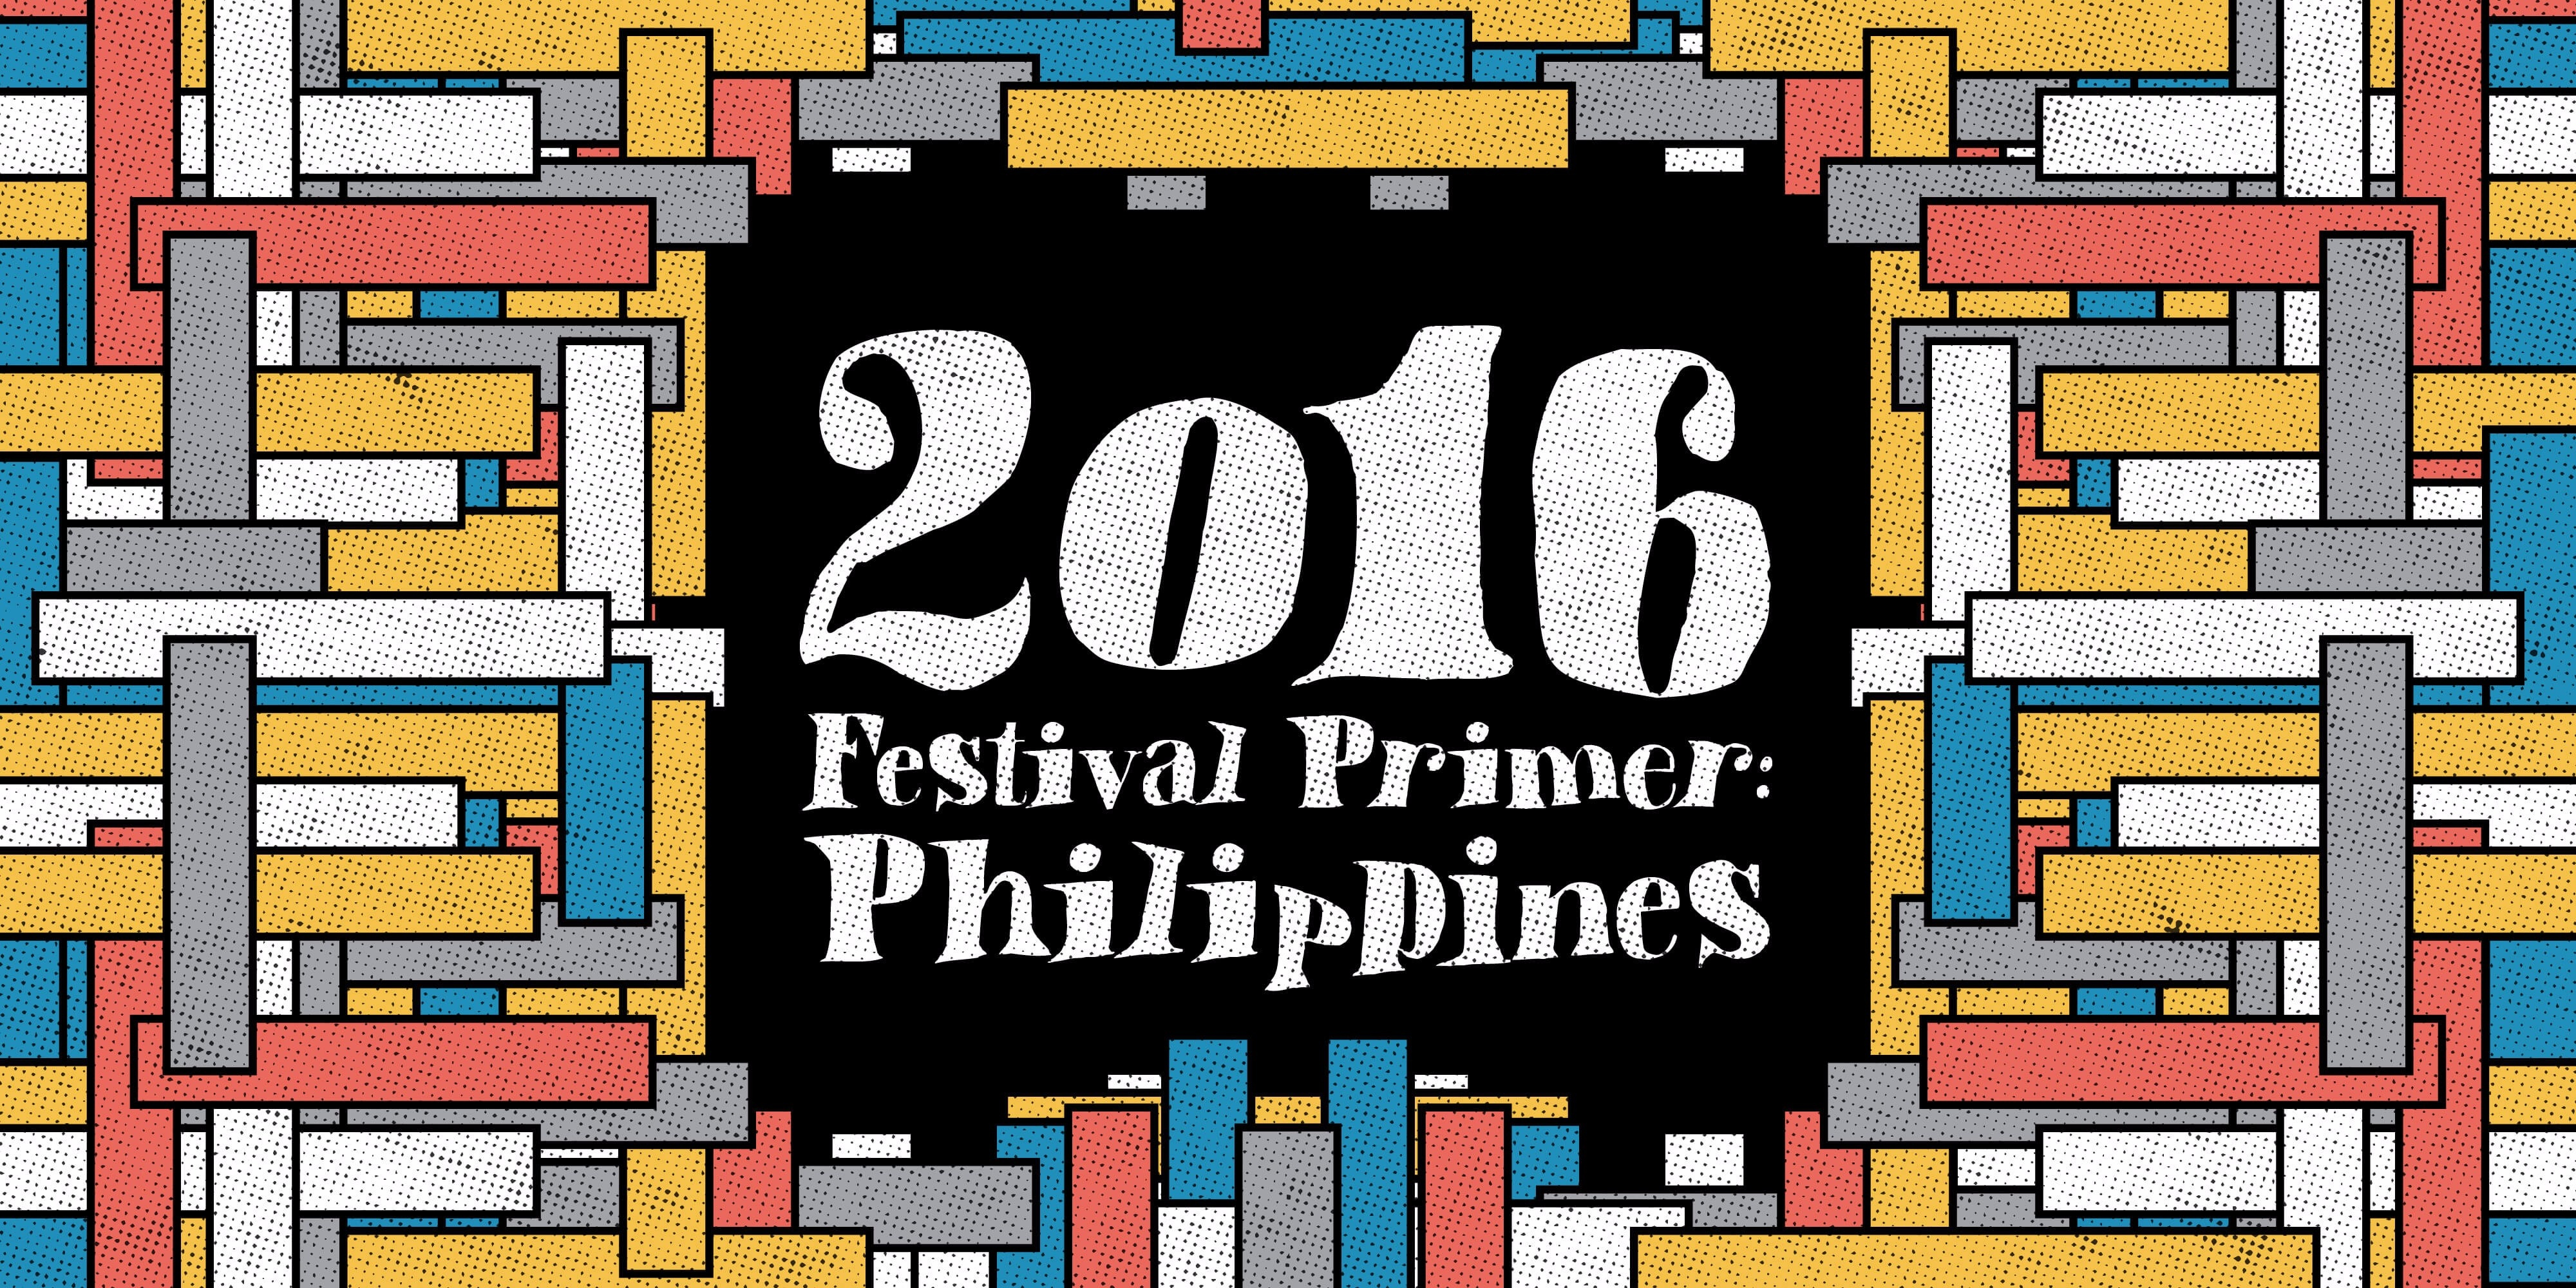 The 2016 Bandwagon Festival Primer: Philippines